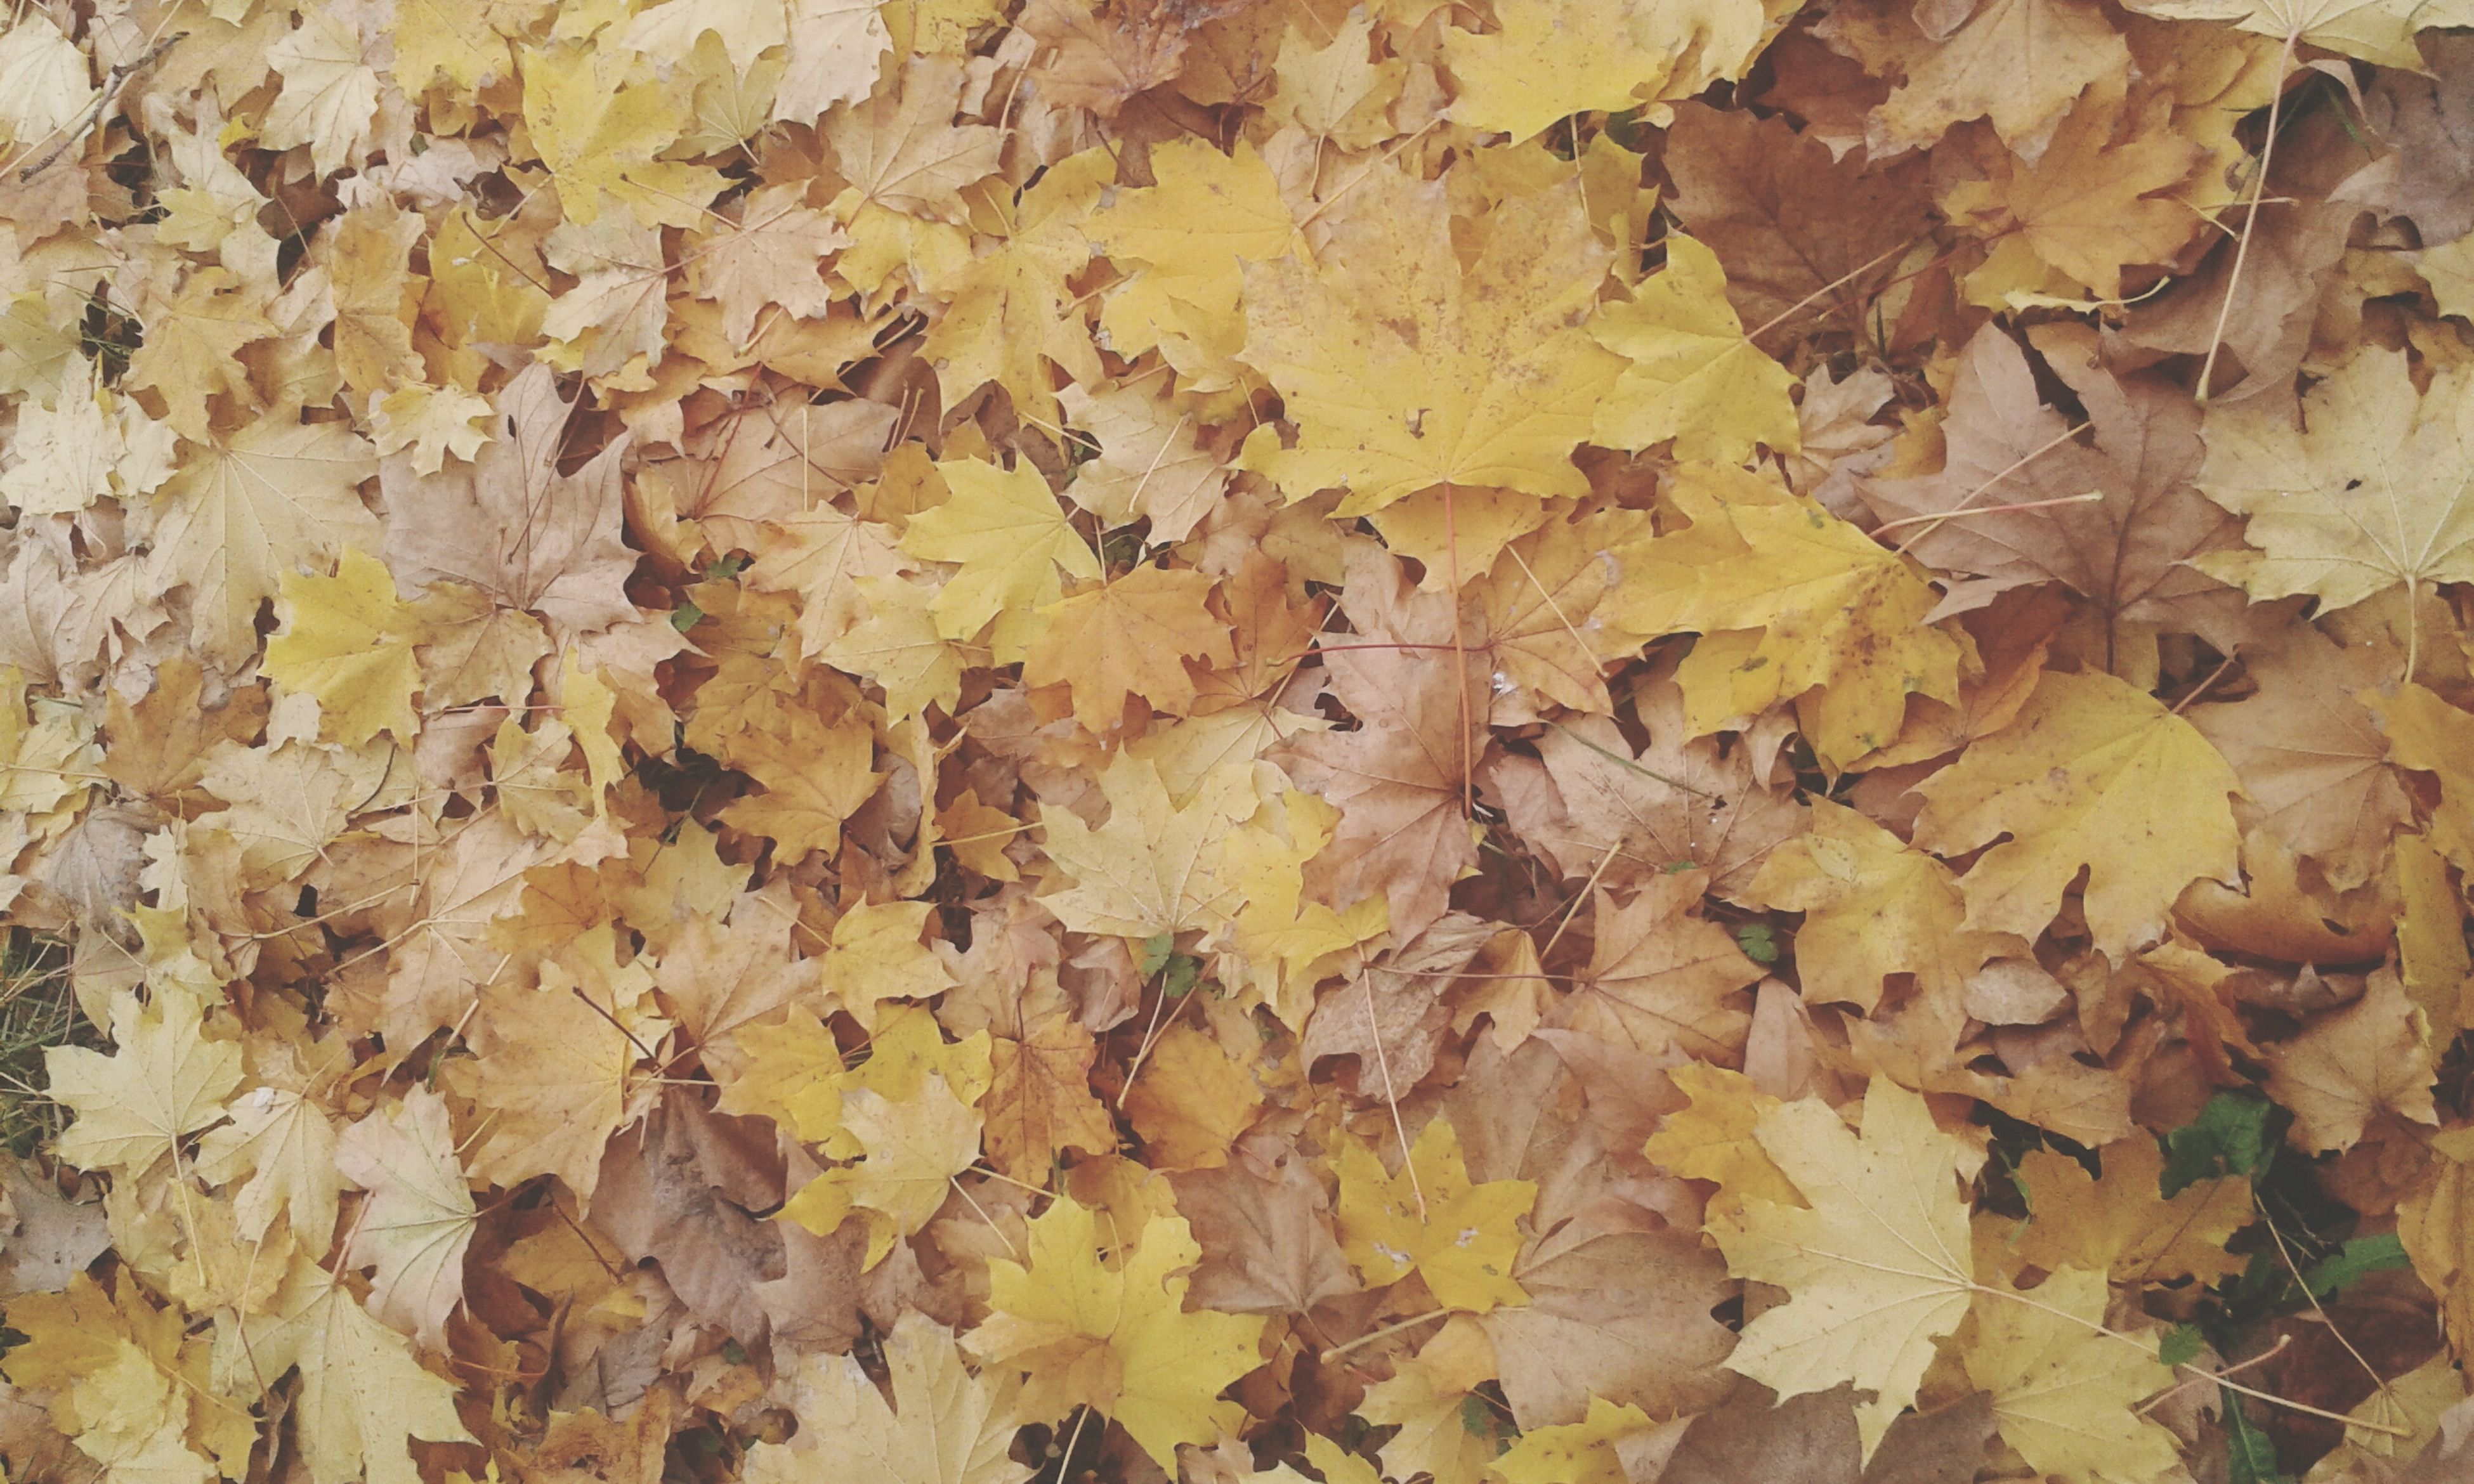 autumn, full frame, backgrounds, change, leaf, season, abundance, dry, leaves, textured, yellow, nature, fallen, high angle view, day, close-up, natural pattern, large group of objects, no people, outdoors